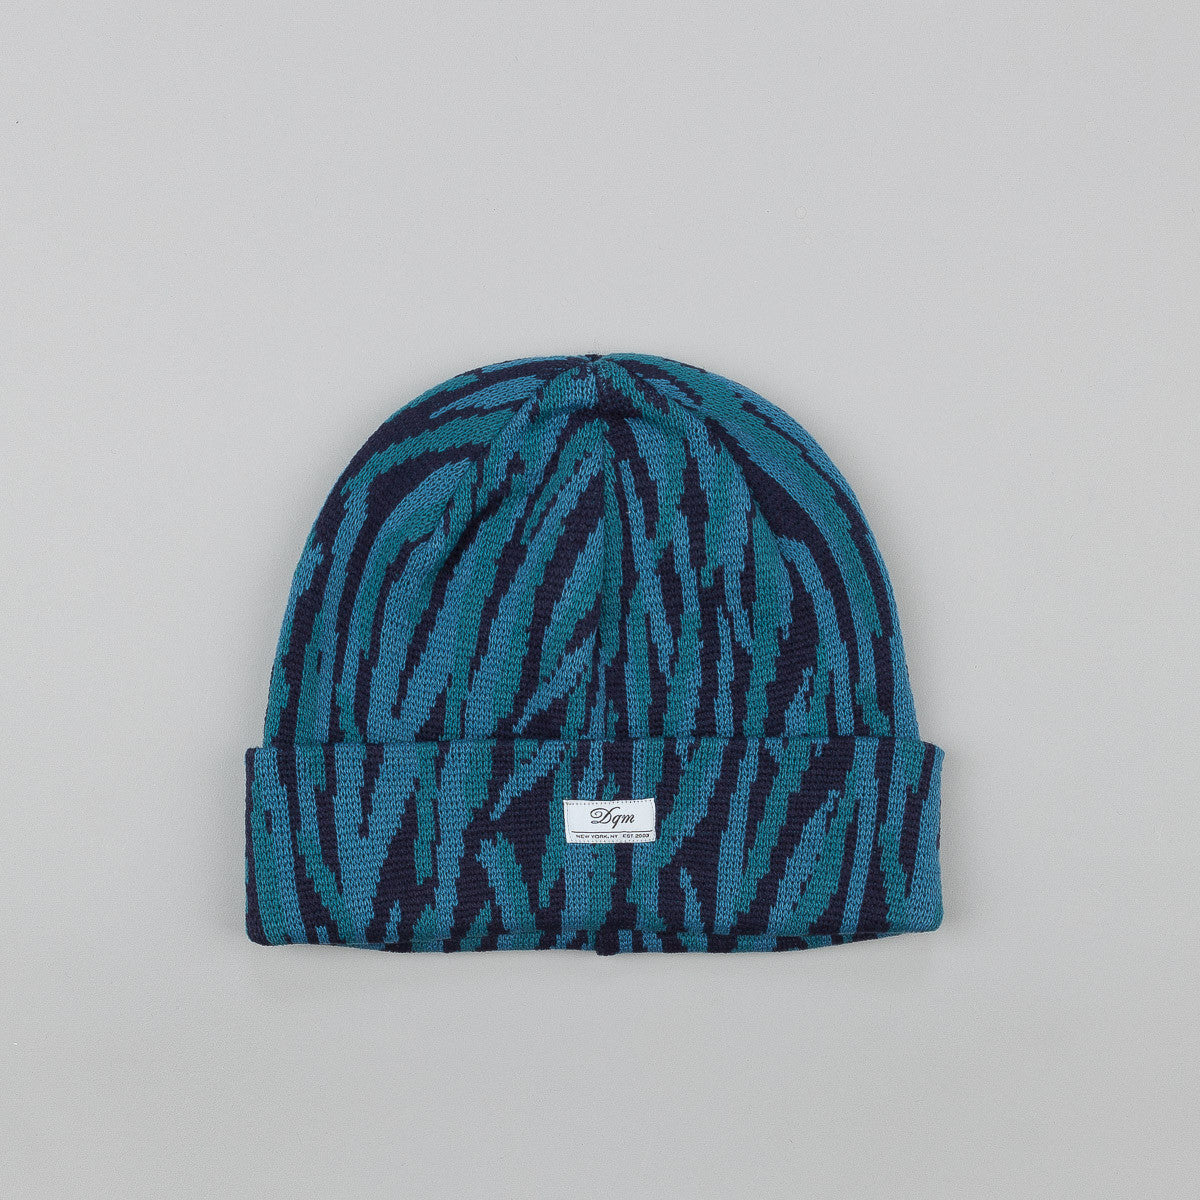 DQM Tiger Striped Camo Beanie Teal